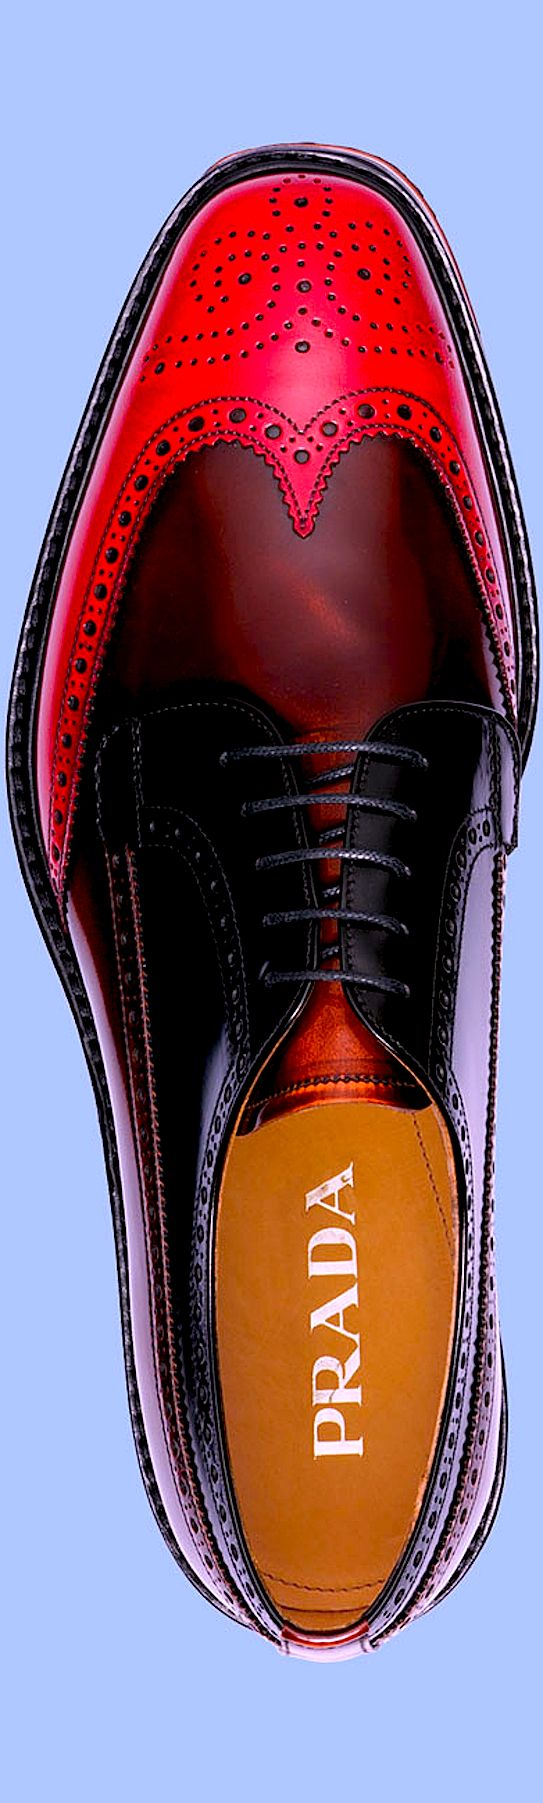 PRADA (a favourite repin of VIP Fashion Australia - providing a portal to exclusive fashion and style from across the globe. Specialising in blacklabel fashion - womens clothing Australia - global fashion houses - Italian fashion - fashion au and fashion boutiques - enter my cat walk and check out the fashion frenzy daily discounted sales - pinterest fashion - what is your fashion style ?)